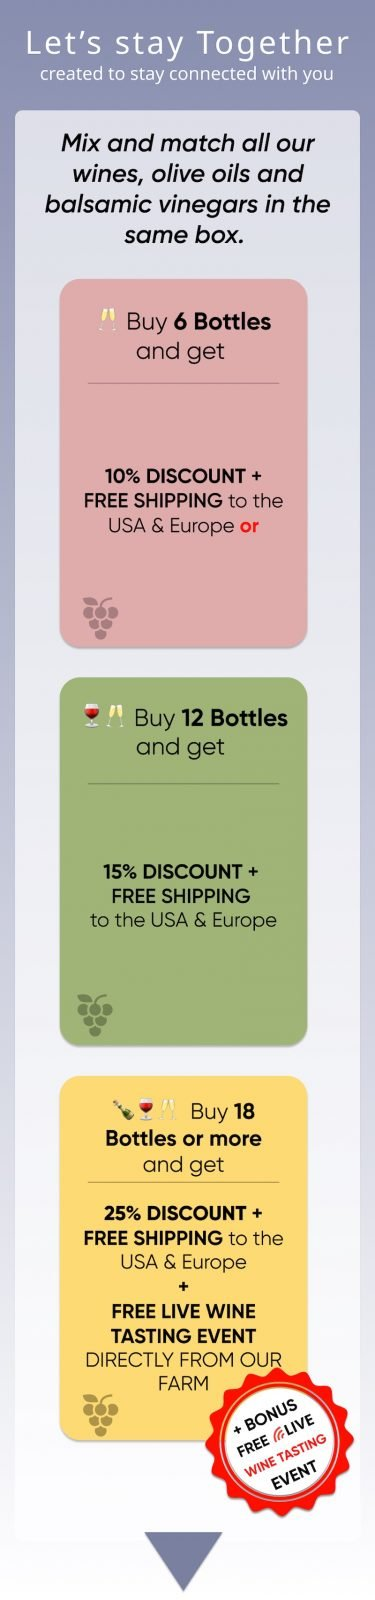 Super Tuscan Red Wine Offer to USA